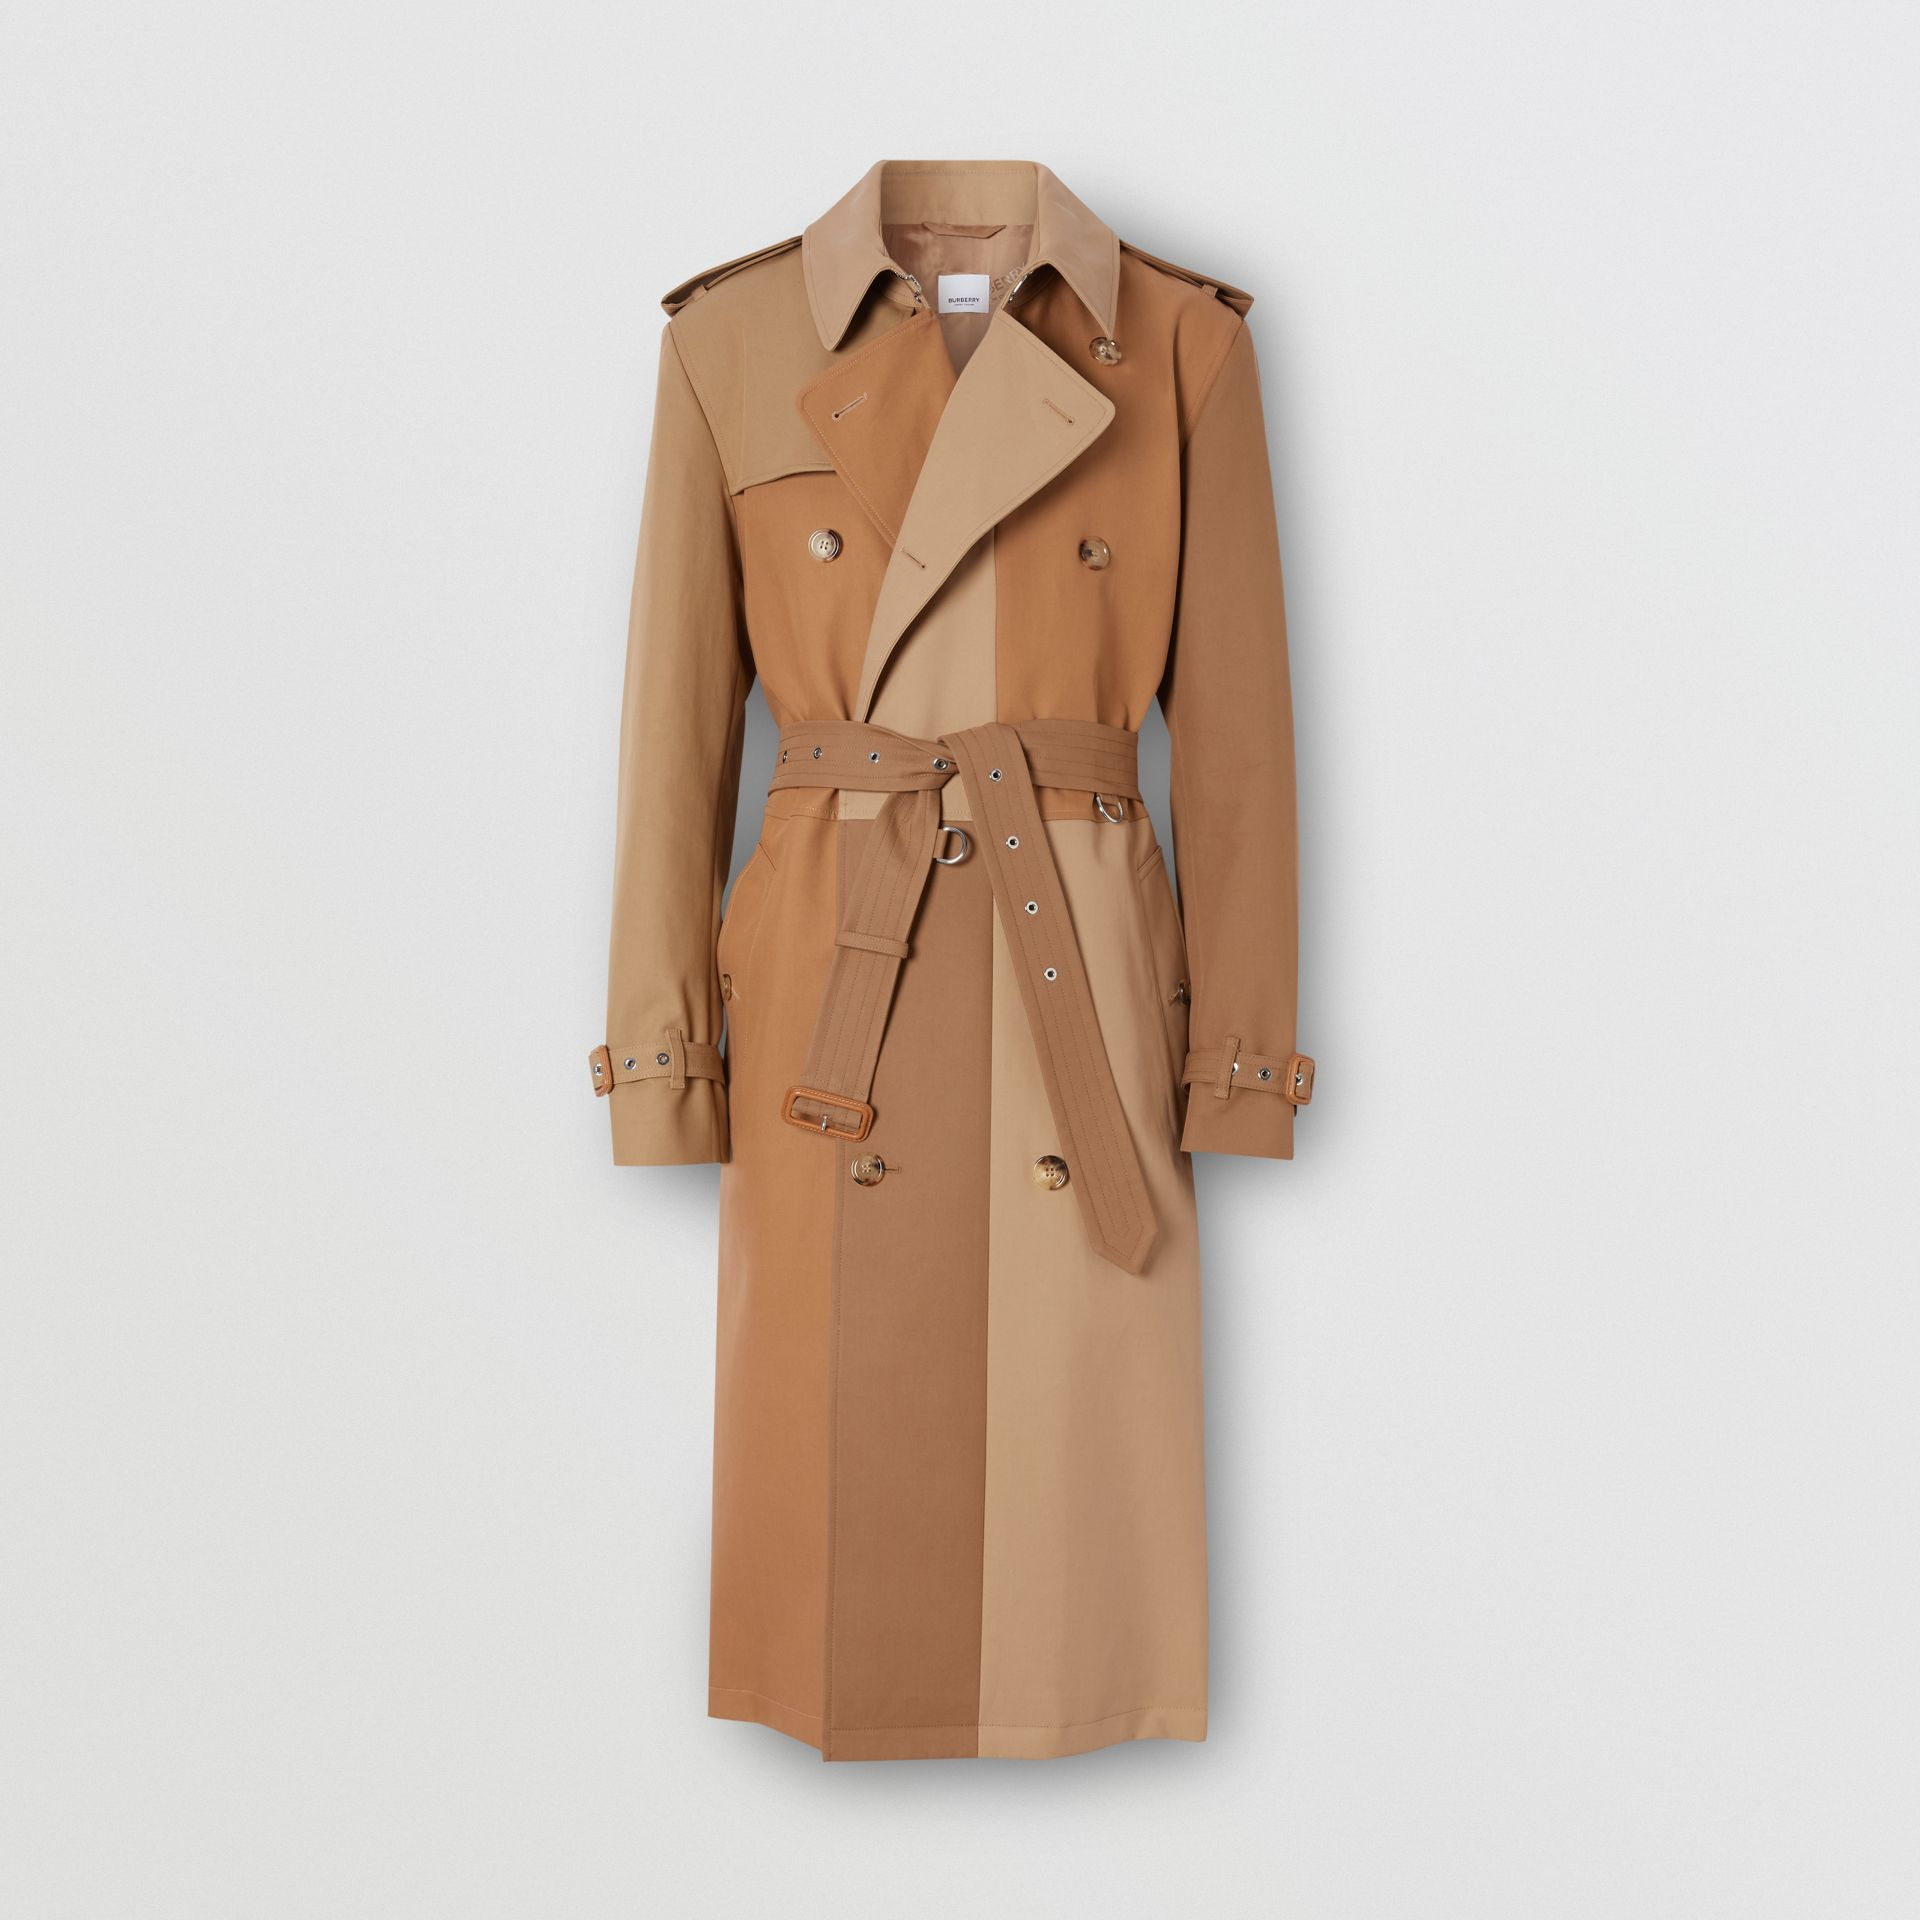 Panelled Cotton Trench Coat in Warm Camel - Men | Burberry - gallery image 3